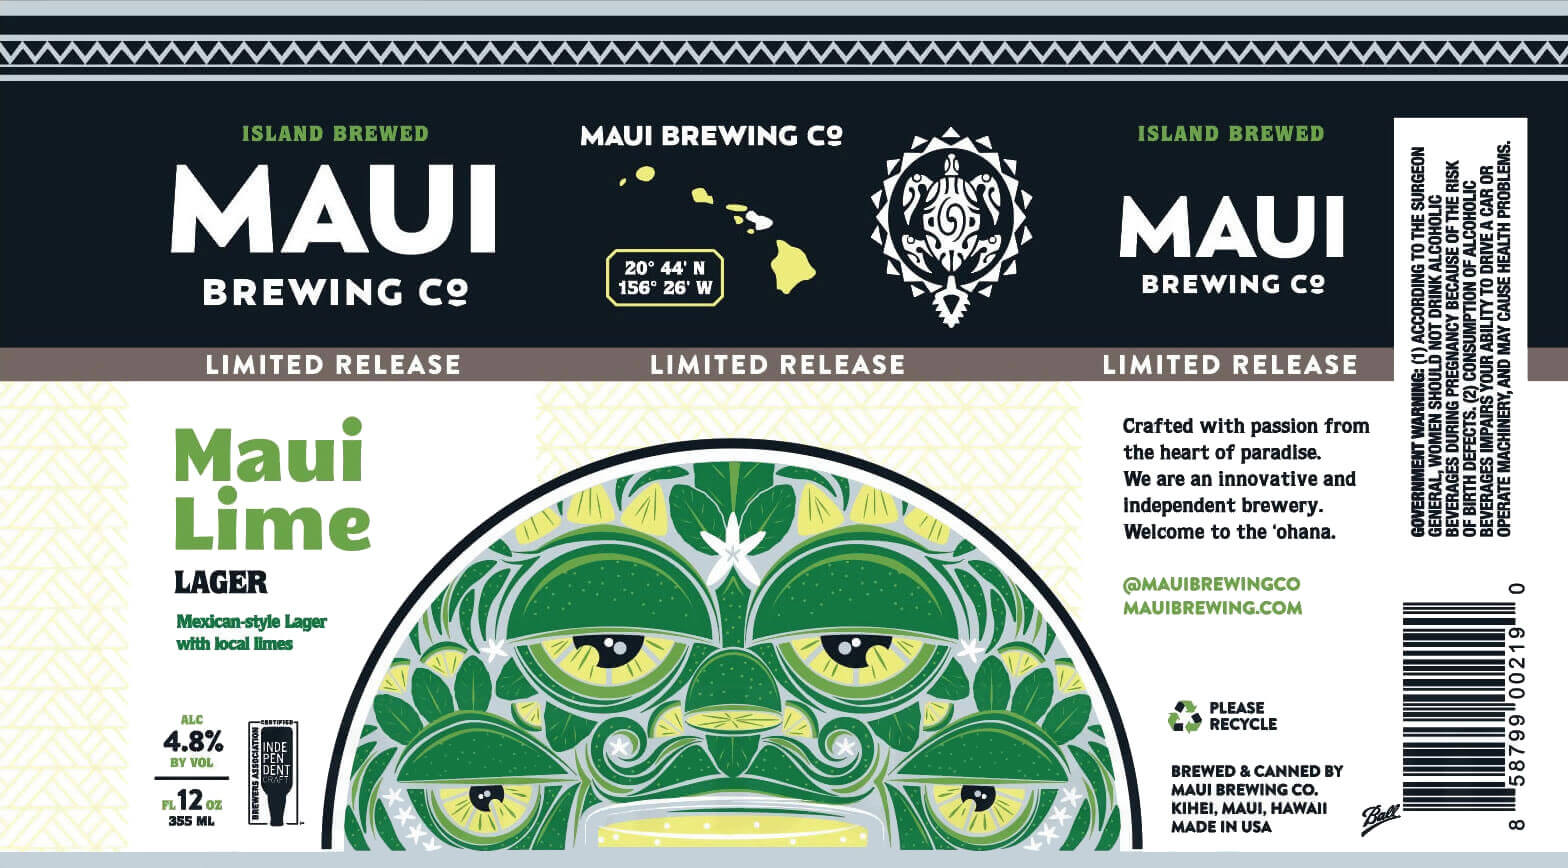 Label design for 12 oz. cans of the Maui Lime Lager by Maui Brewing Company